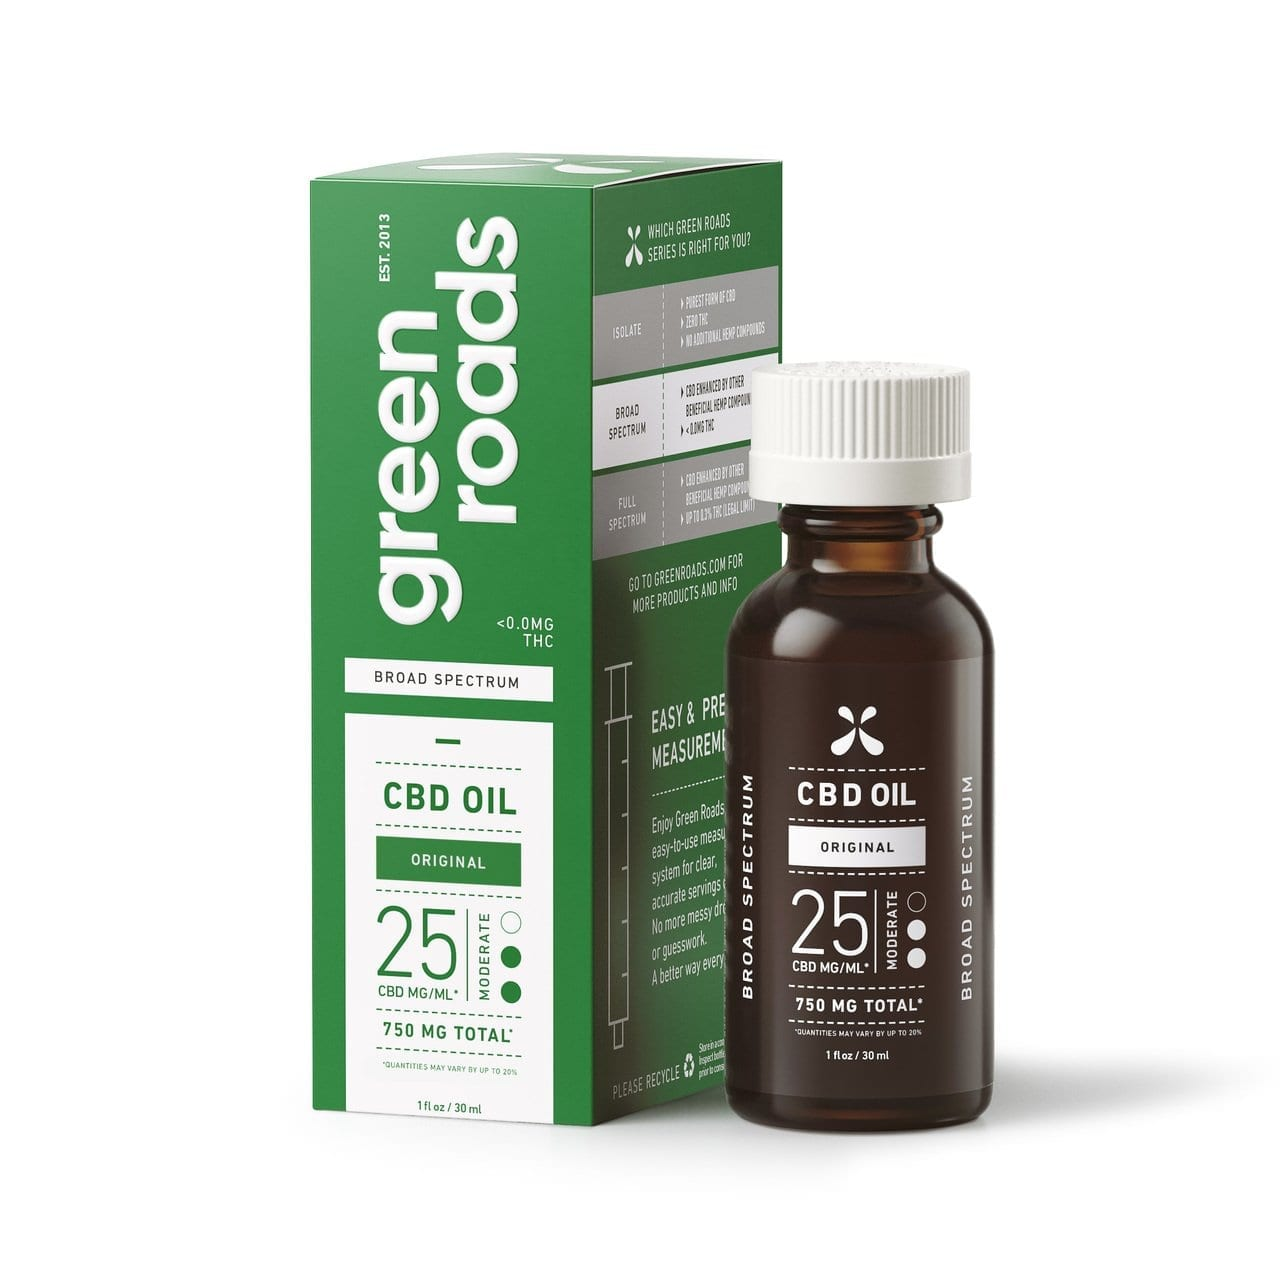 4-Broad-Spectrum-cbd-oil-Original-10mg.jpg